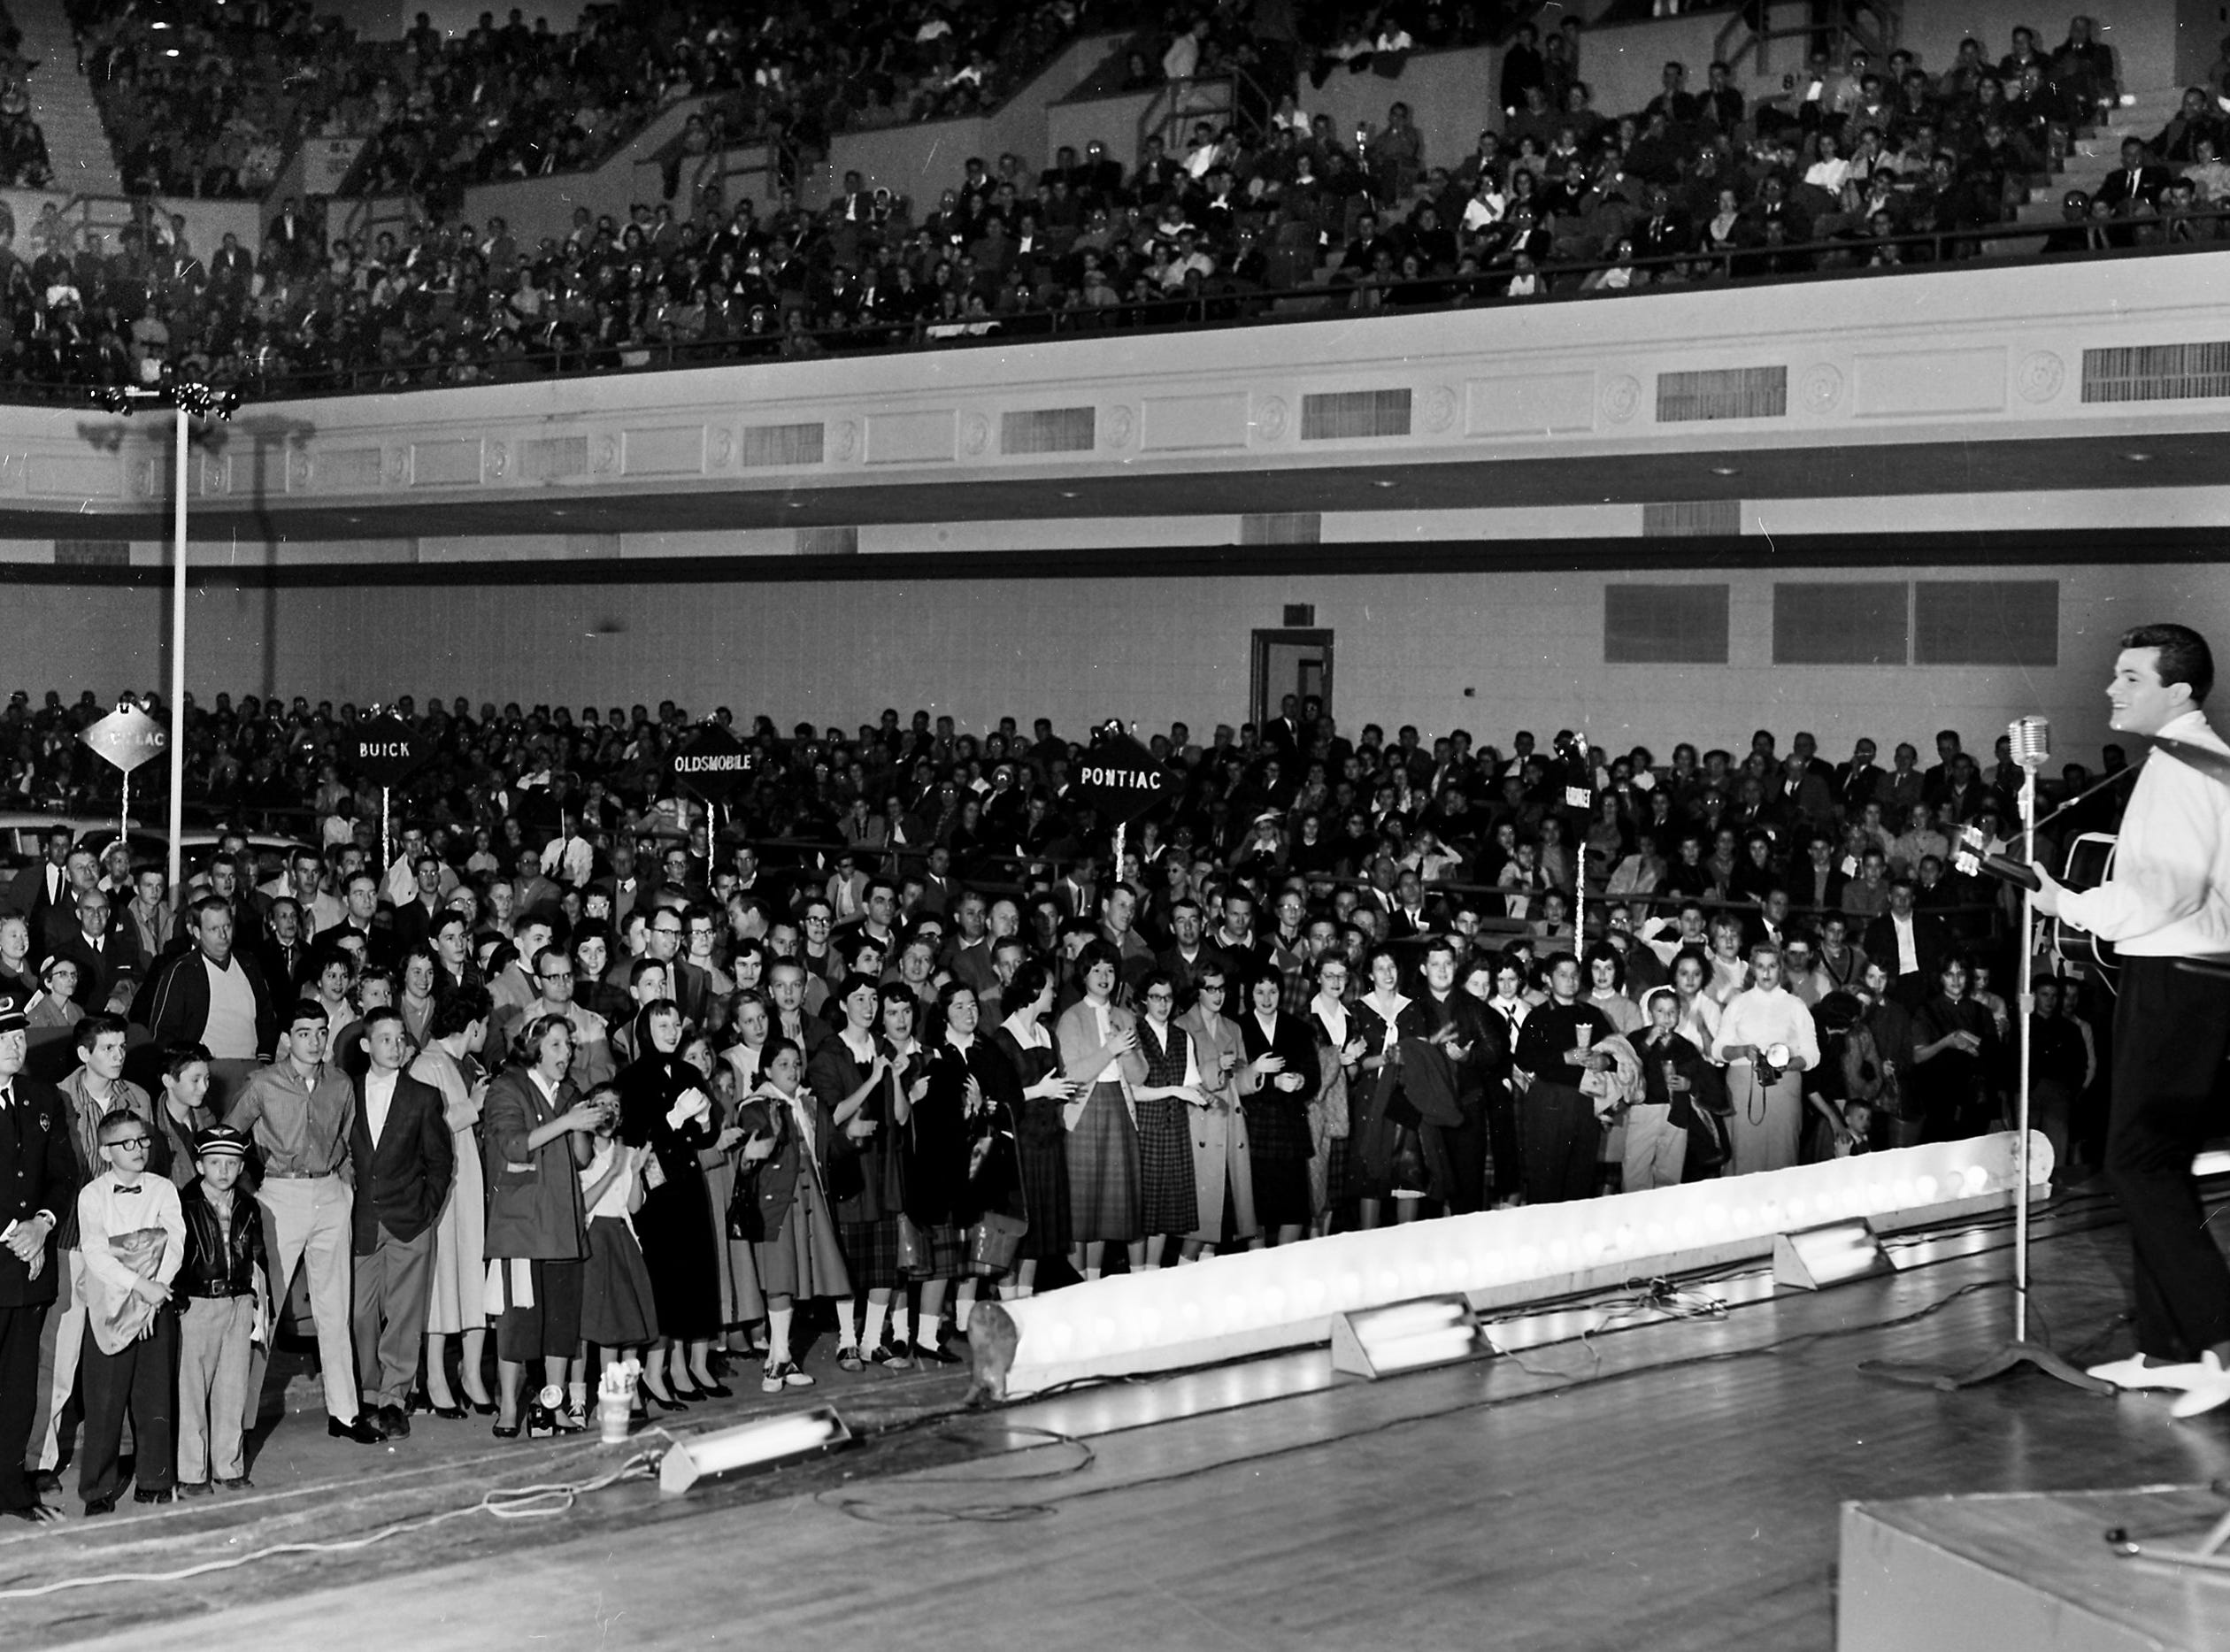 Enthralled fans, so packed that even standing room was taken, crowded close to hear singing celebrity Tommy Sands rock with a tune during the Memphis Auto Show in Ellis Auditorium on 10 Jan 1959.  He was scheduled for three performances  before the exhibit closed.